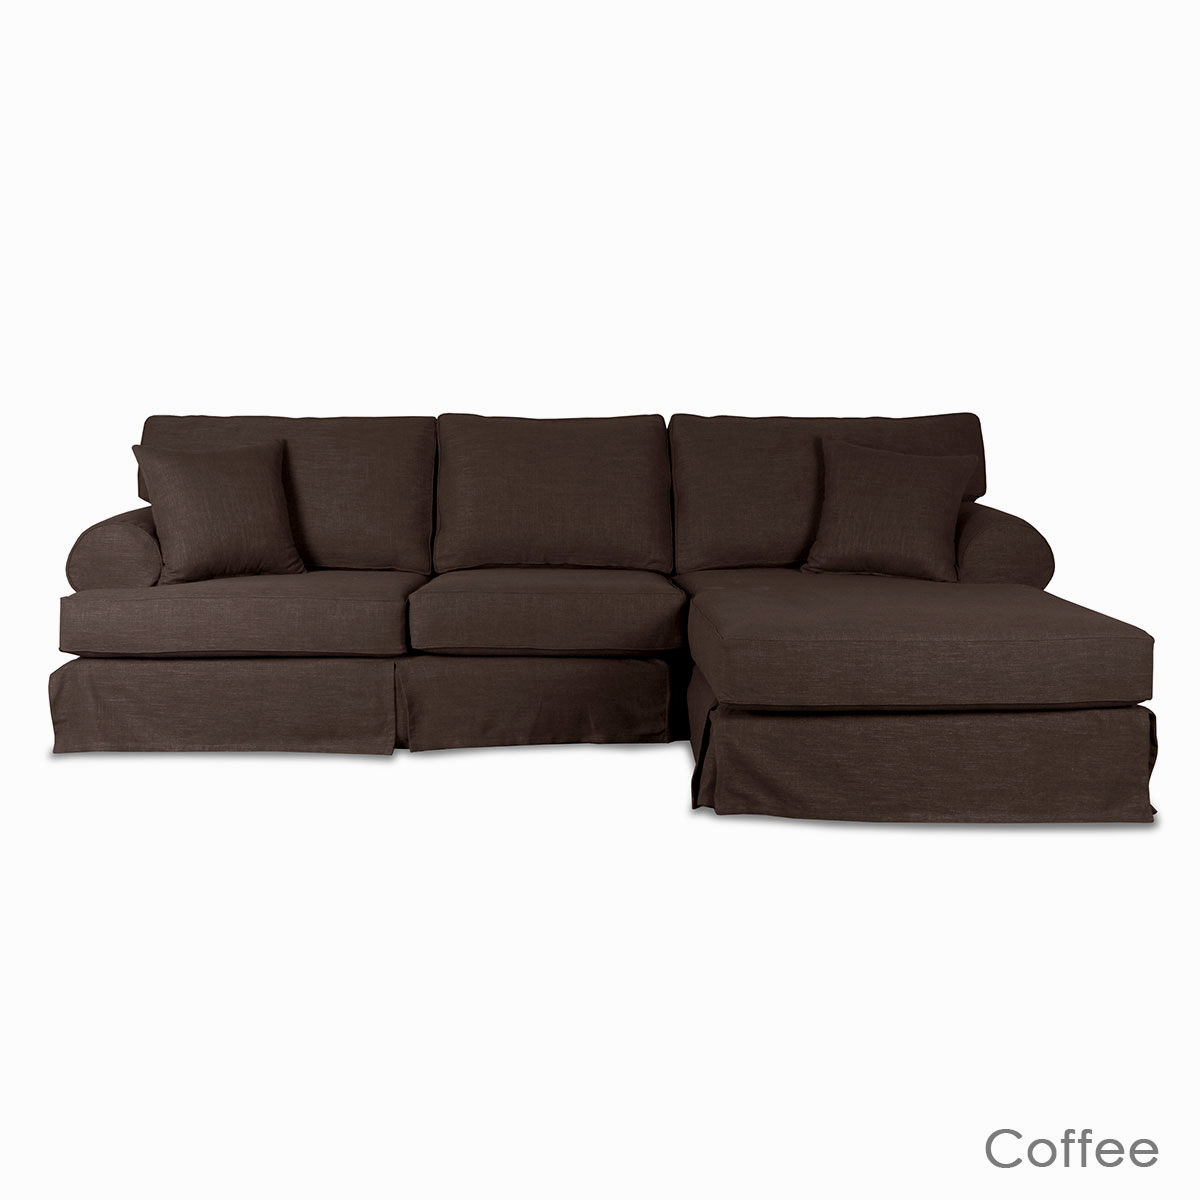 amazing sofa covers walmart decoration-New sofa Covers Walmart Concept